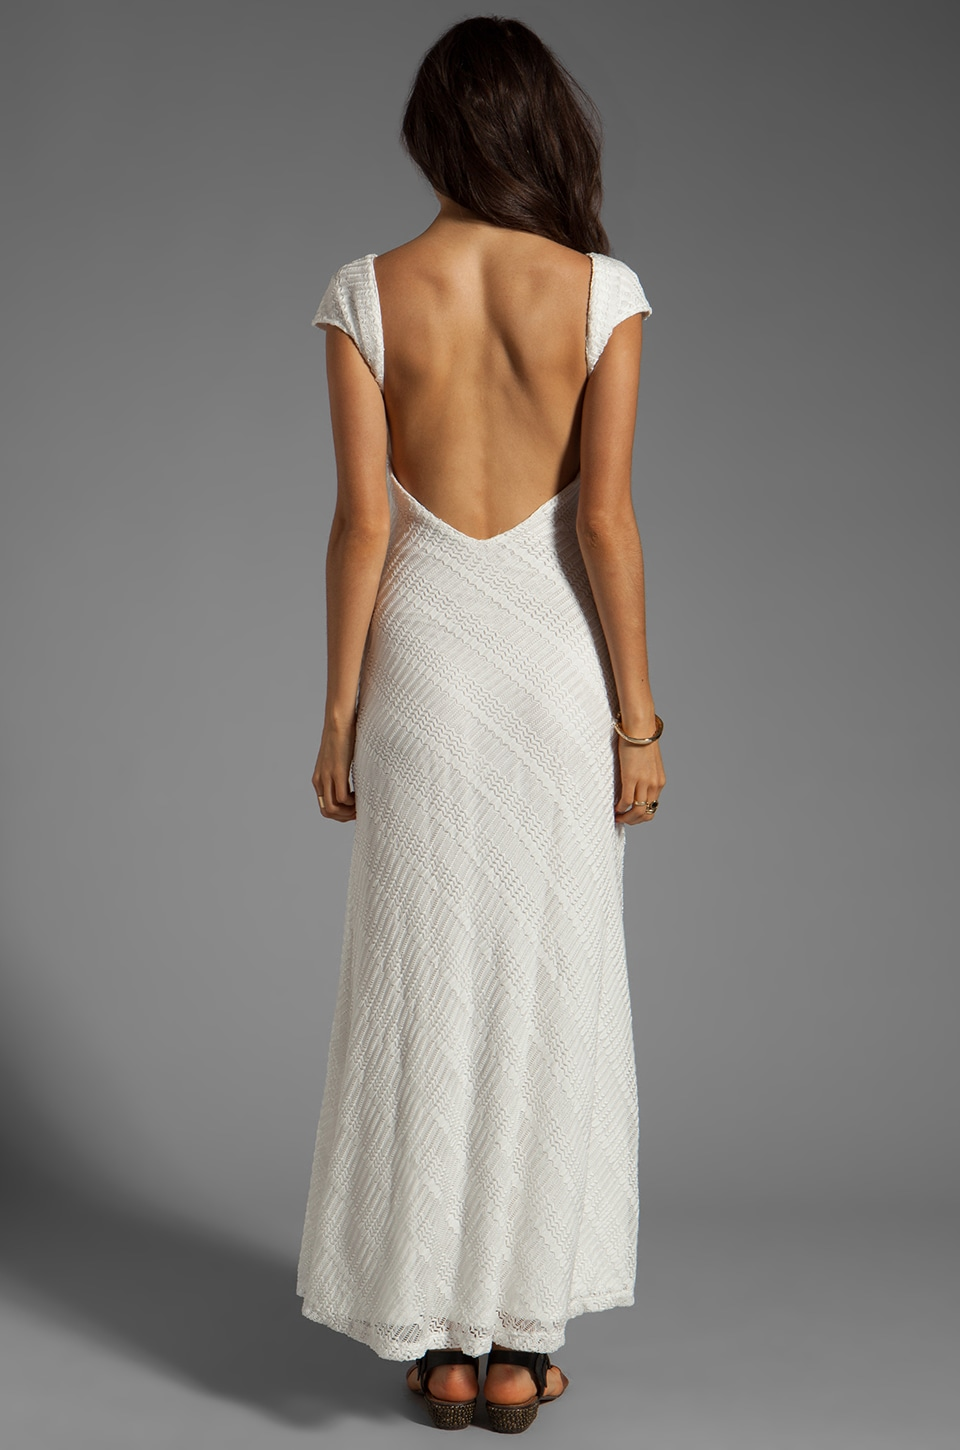 Lovers + Friends Vanity Fair Dress in White Stretch